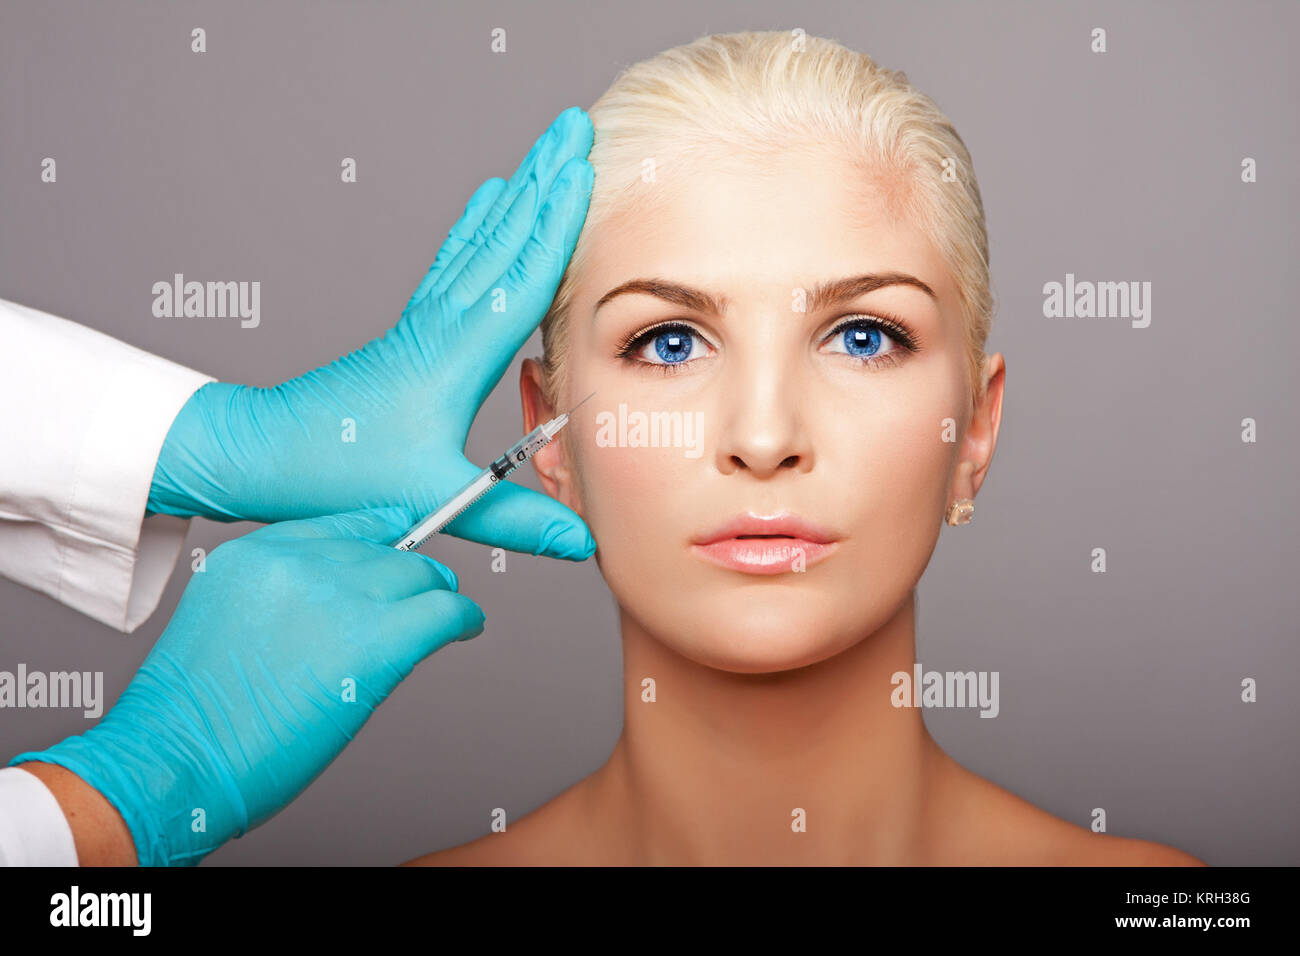 Cosmetic plastic surgeon injecting aesthetics face - Stock Image